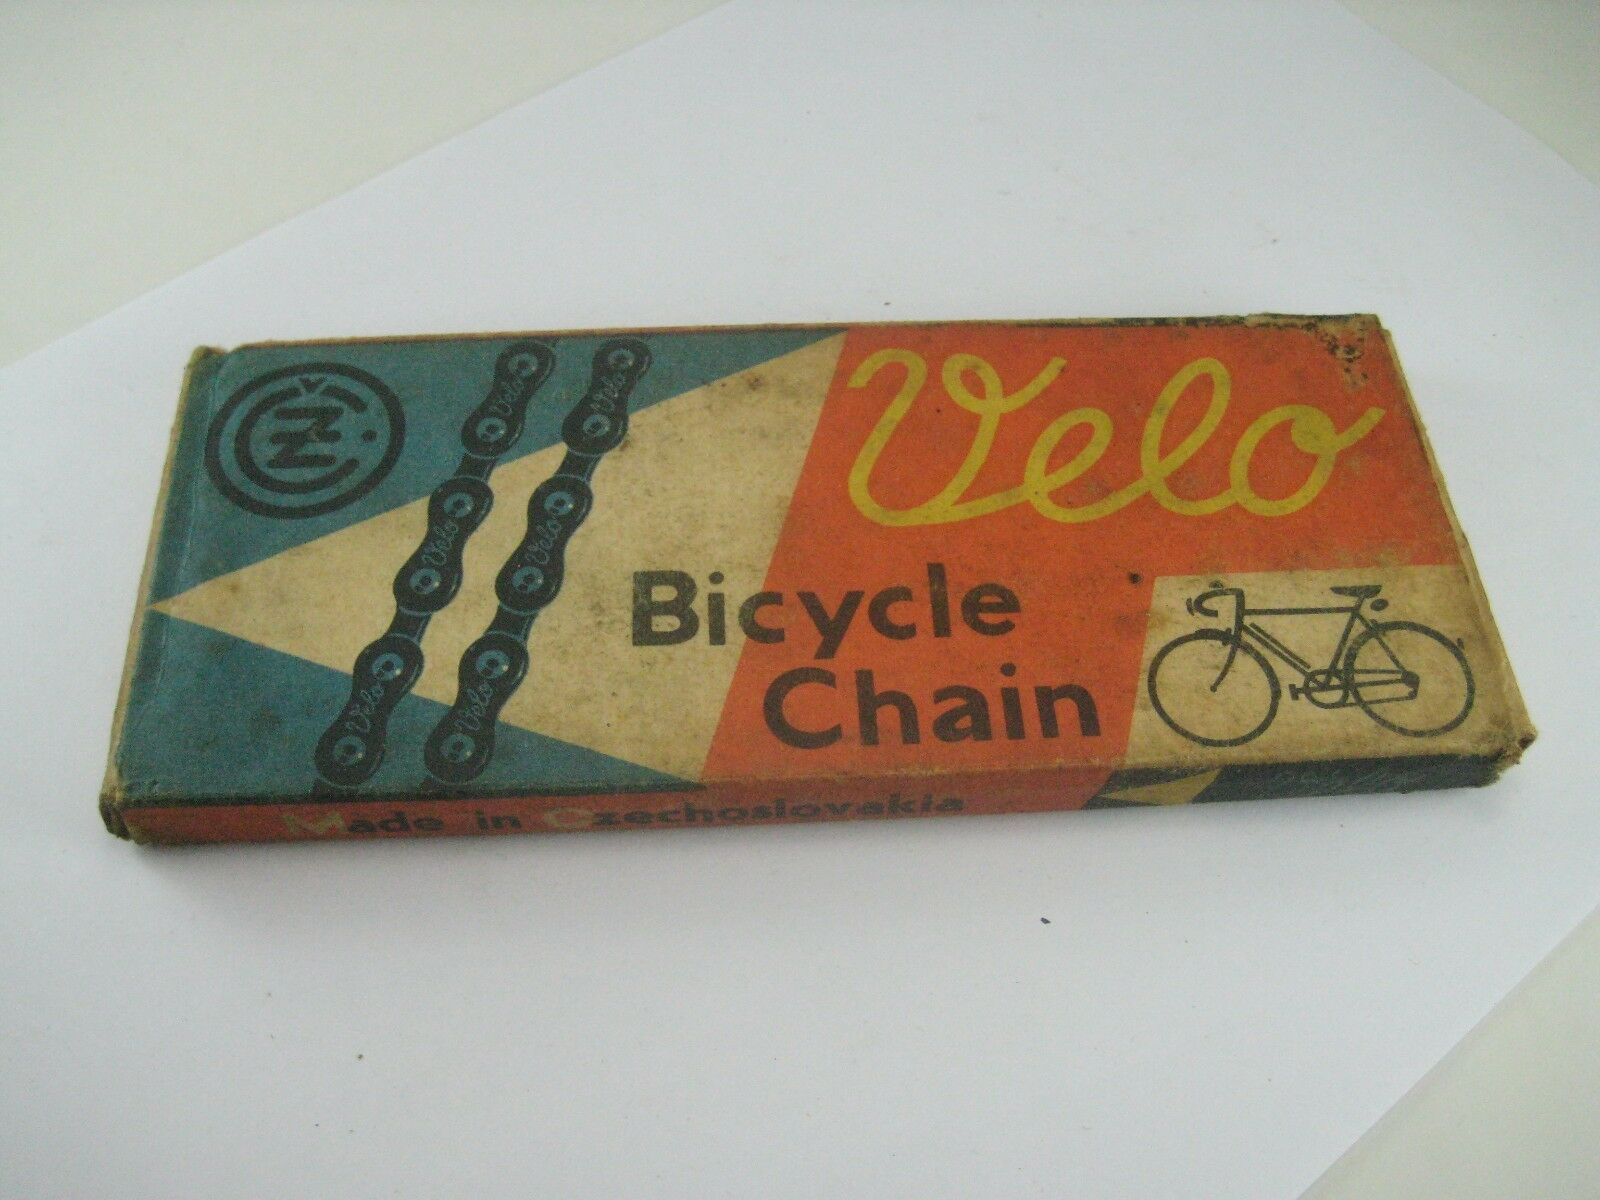 VELO BICYCLE CZ CHAIN 1 2  X 1 8  112L FOR VINTAGE RALEIGH FROM CZECHOSLOVAKIA